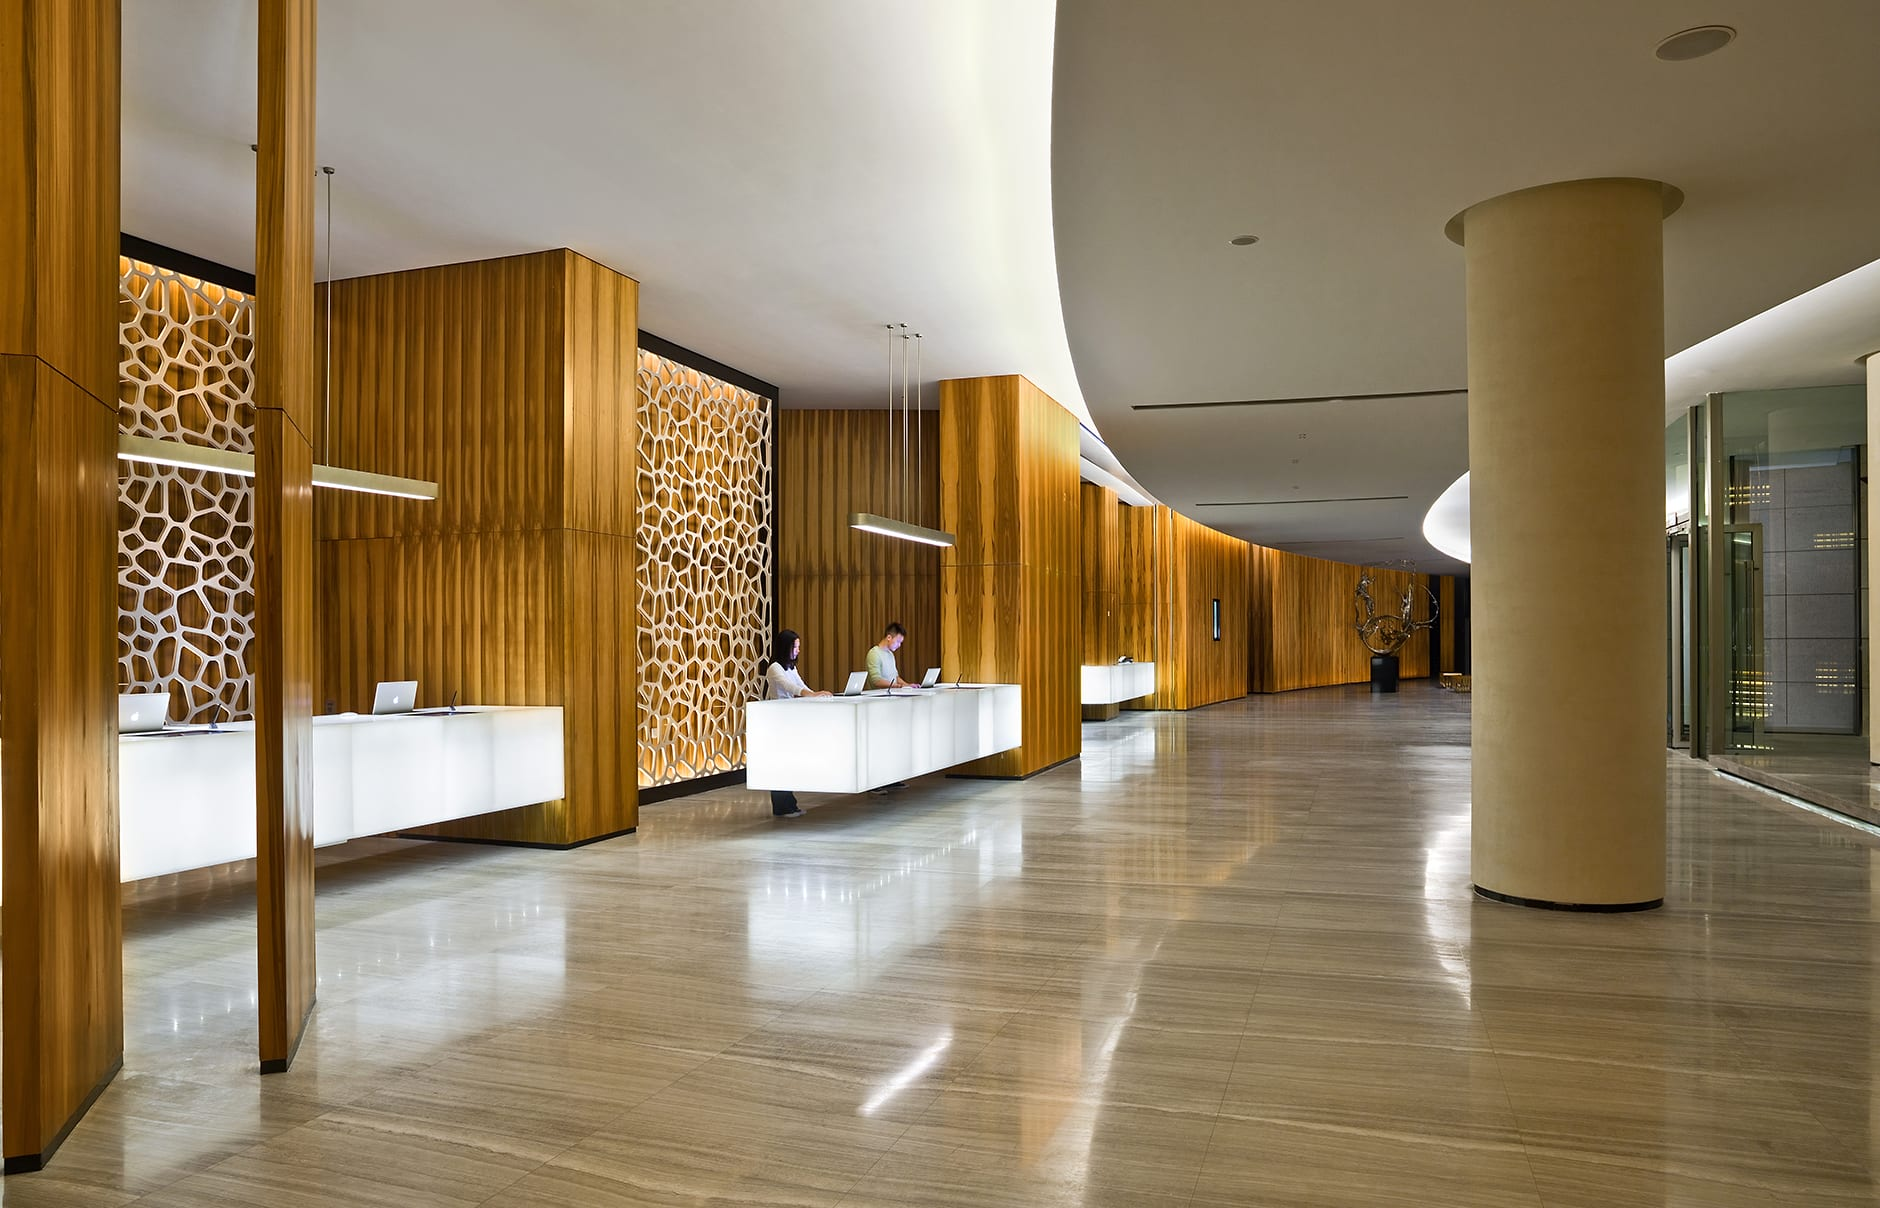 Lobby. EAST Beijing, China. Hotel Review by TravelPlusStyle. Photo © Swire Hotels